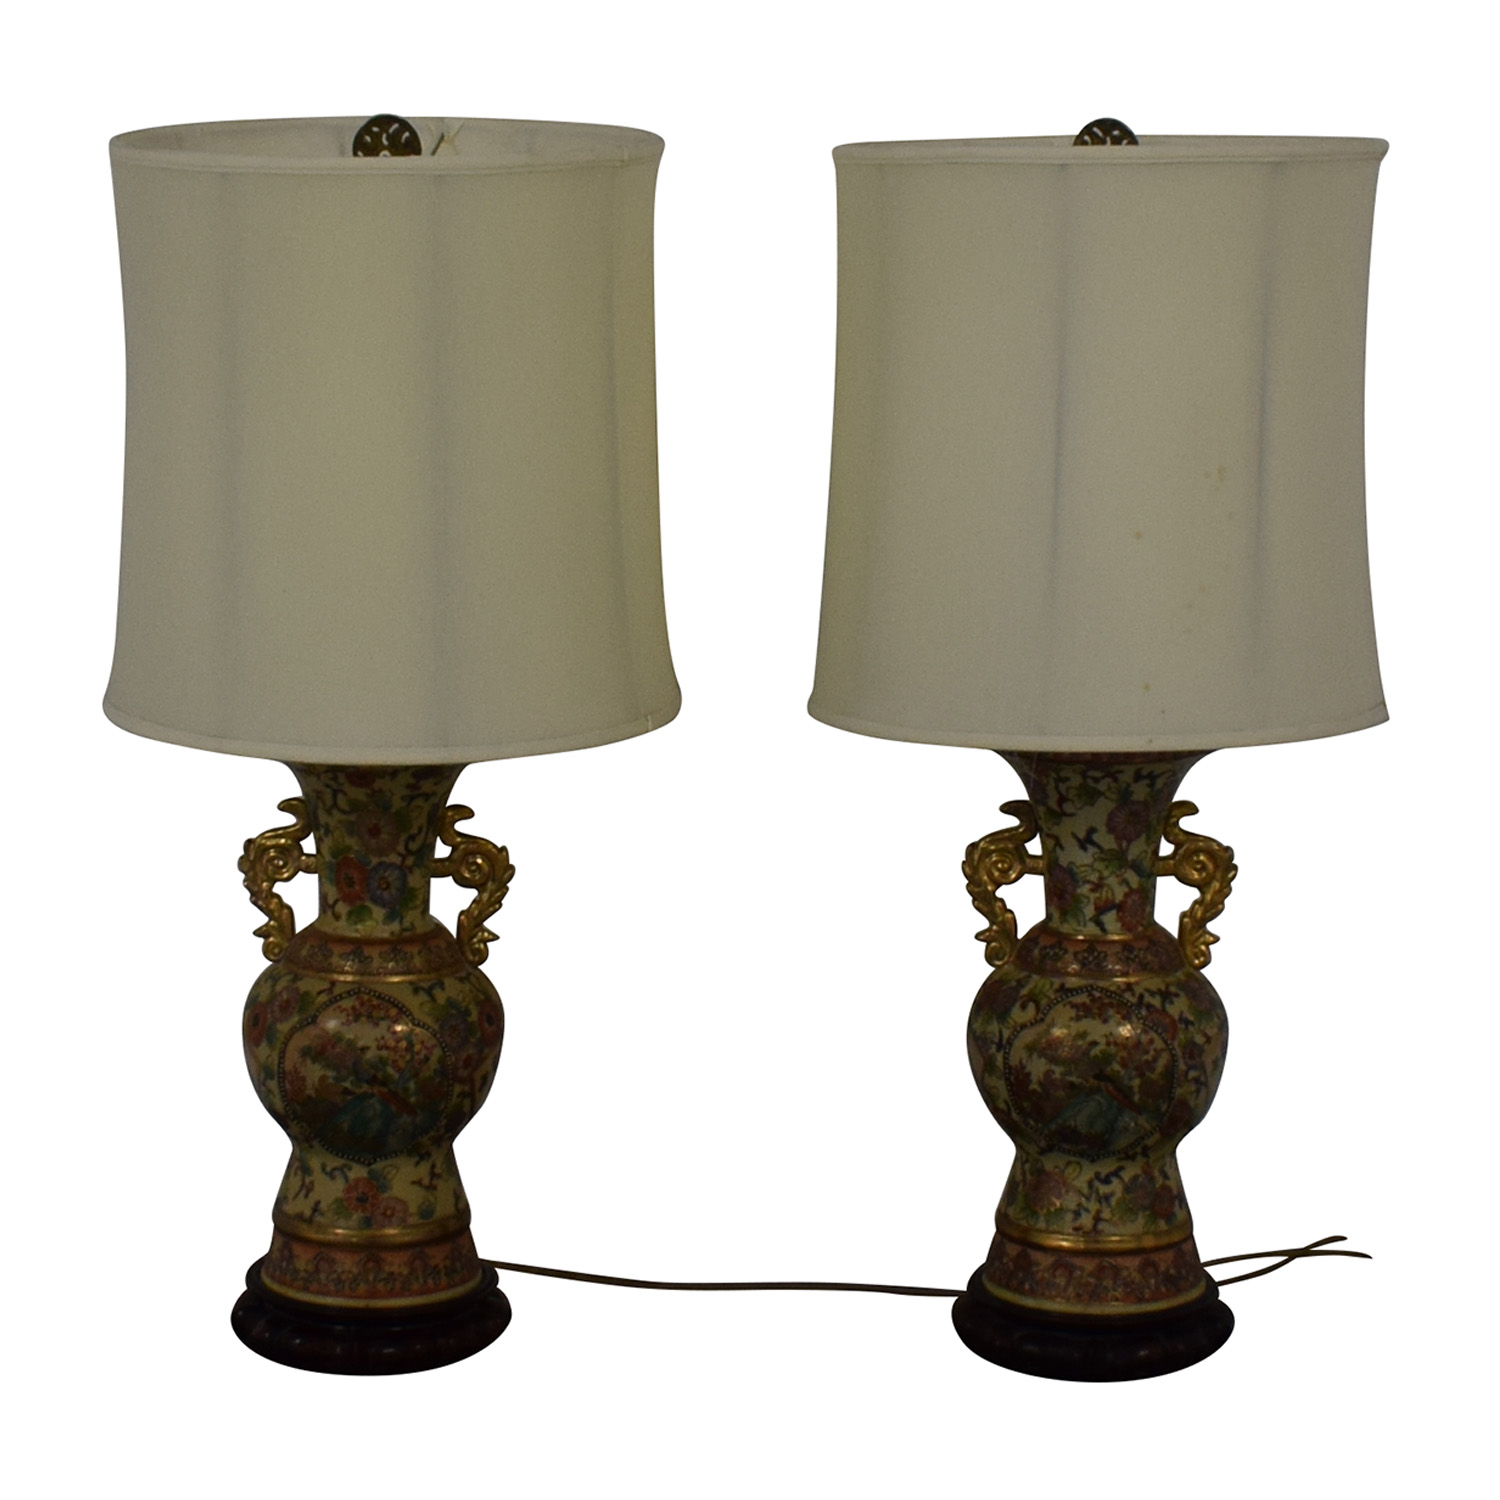 Vintage Celadon Oriental Table Lamps used